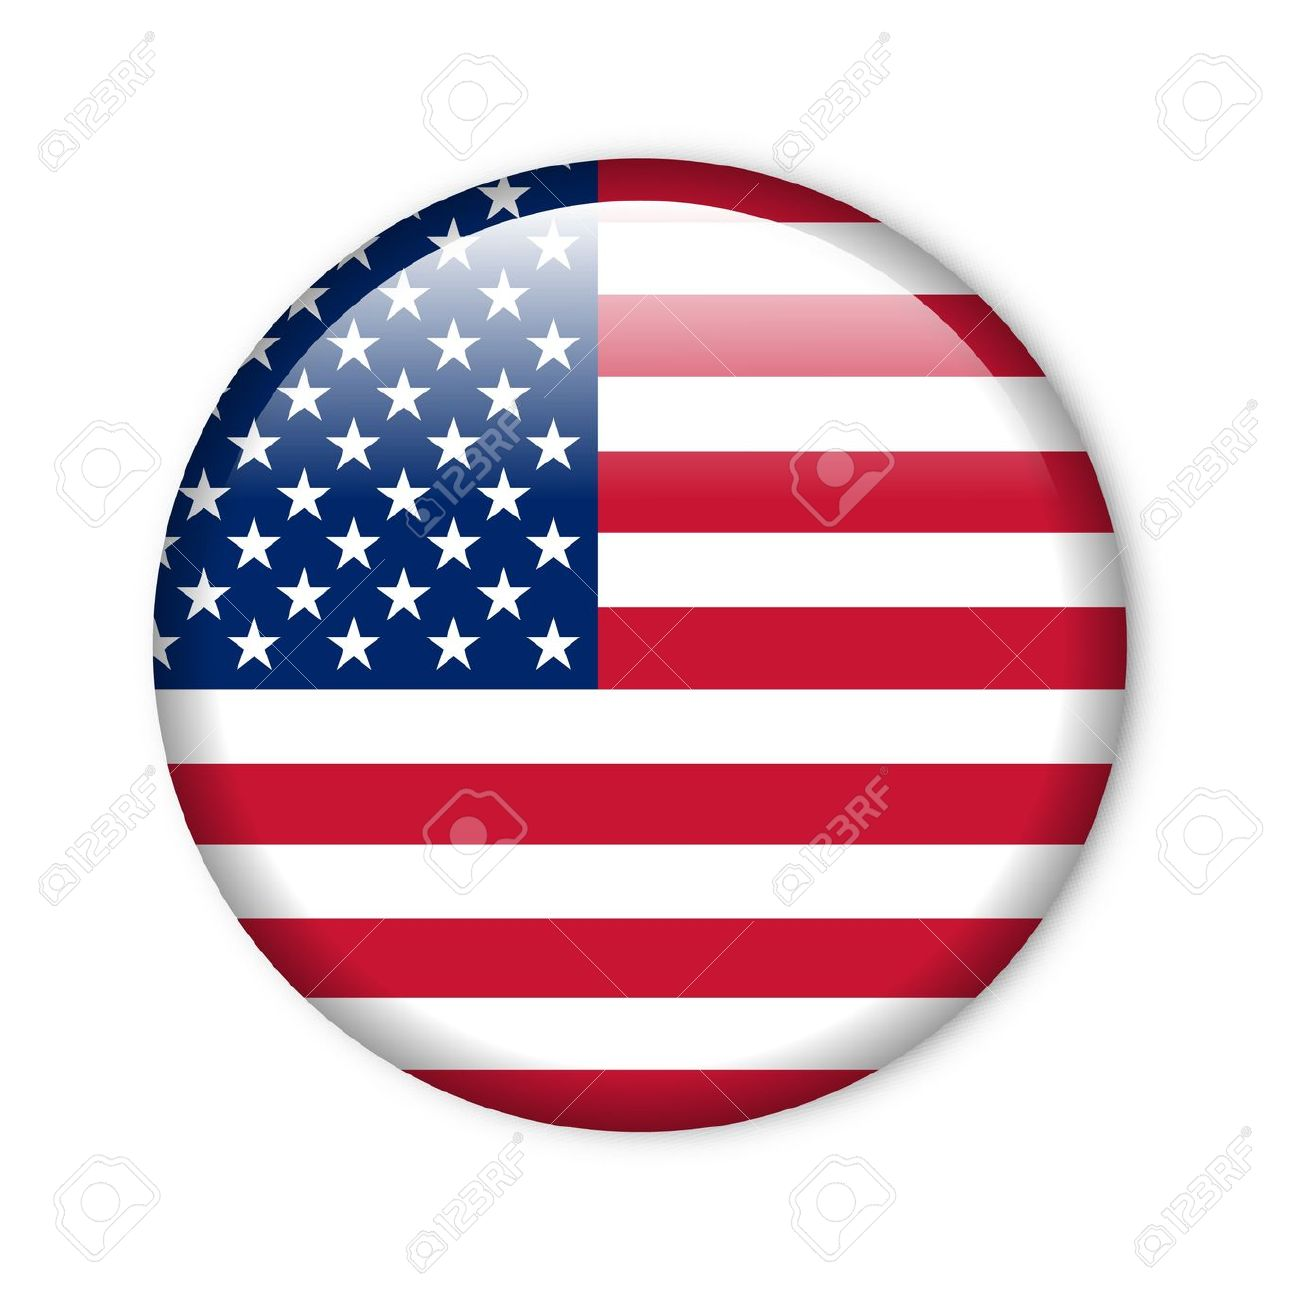 united states - glossy button with flag Stock Photo - 11279661